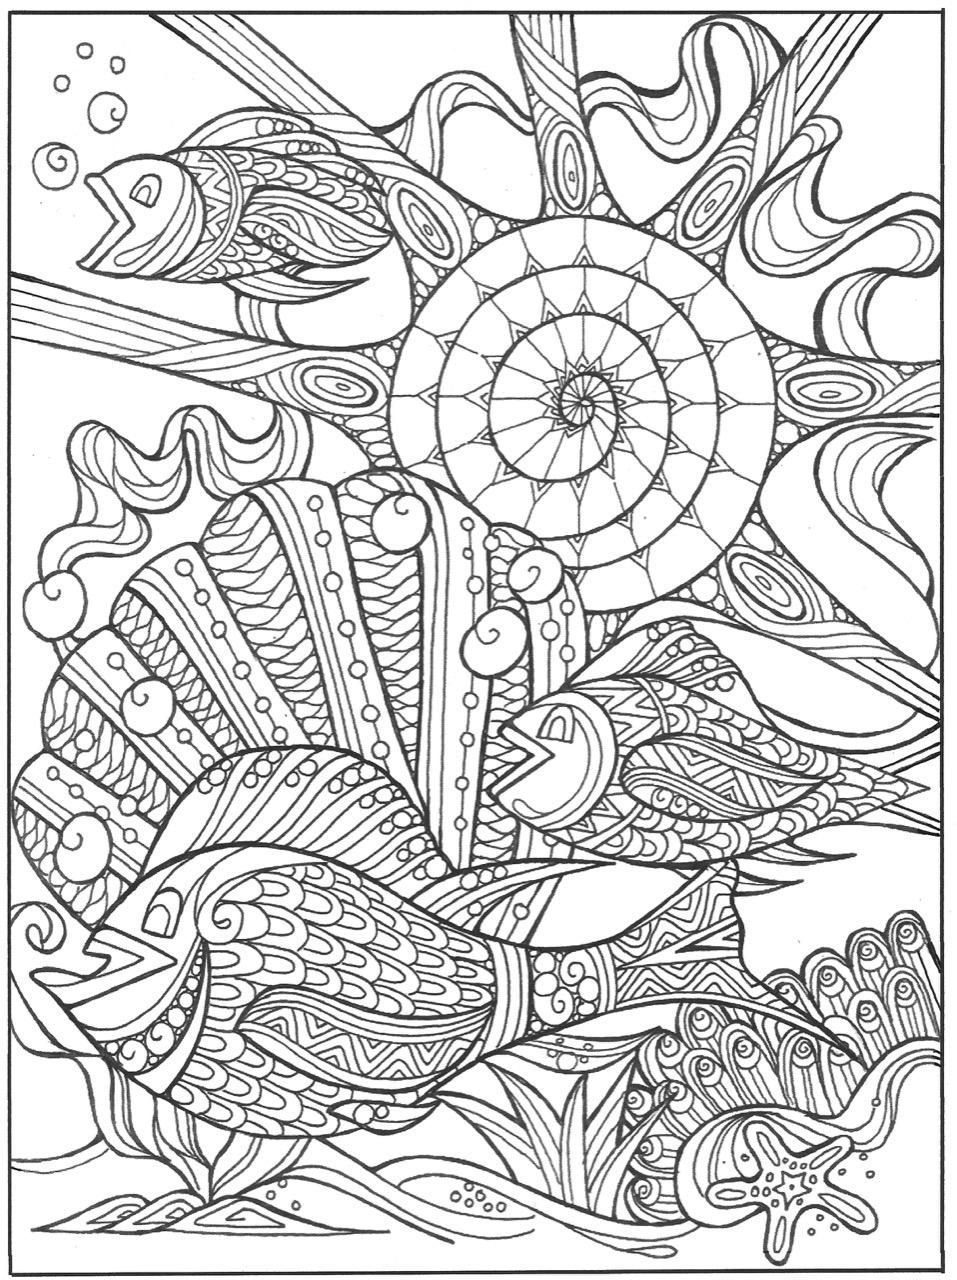 Under The Sea In Paradise Coloring Page Beach Coloring Pages Monster Coloring Pages Coloring Pages [ 1280 x 957 Pixel ]